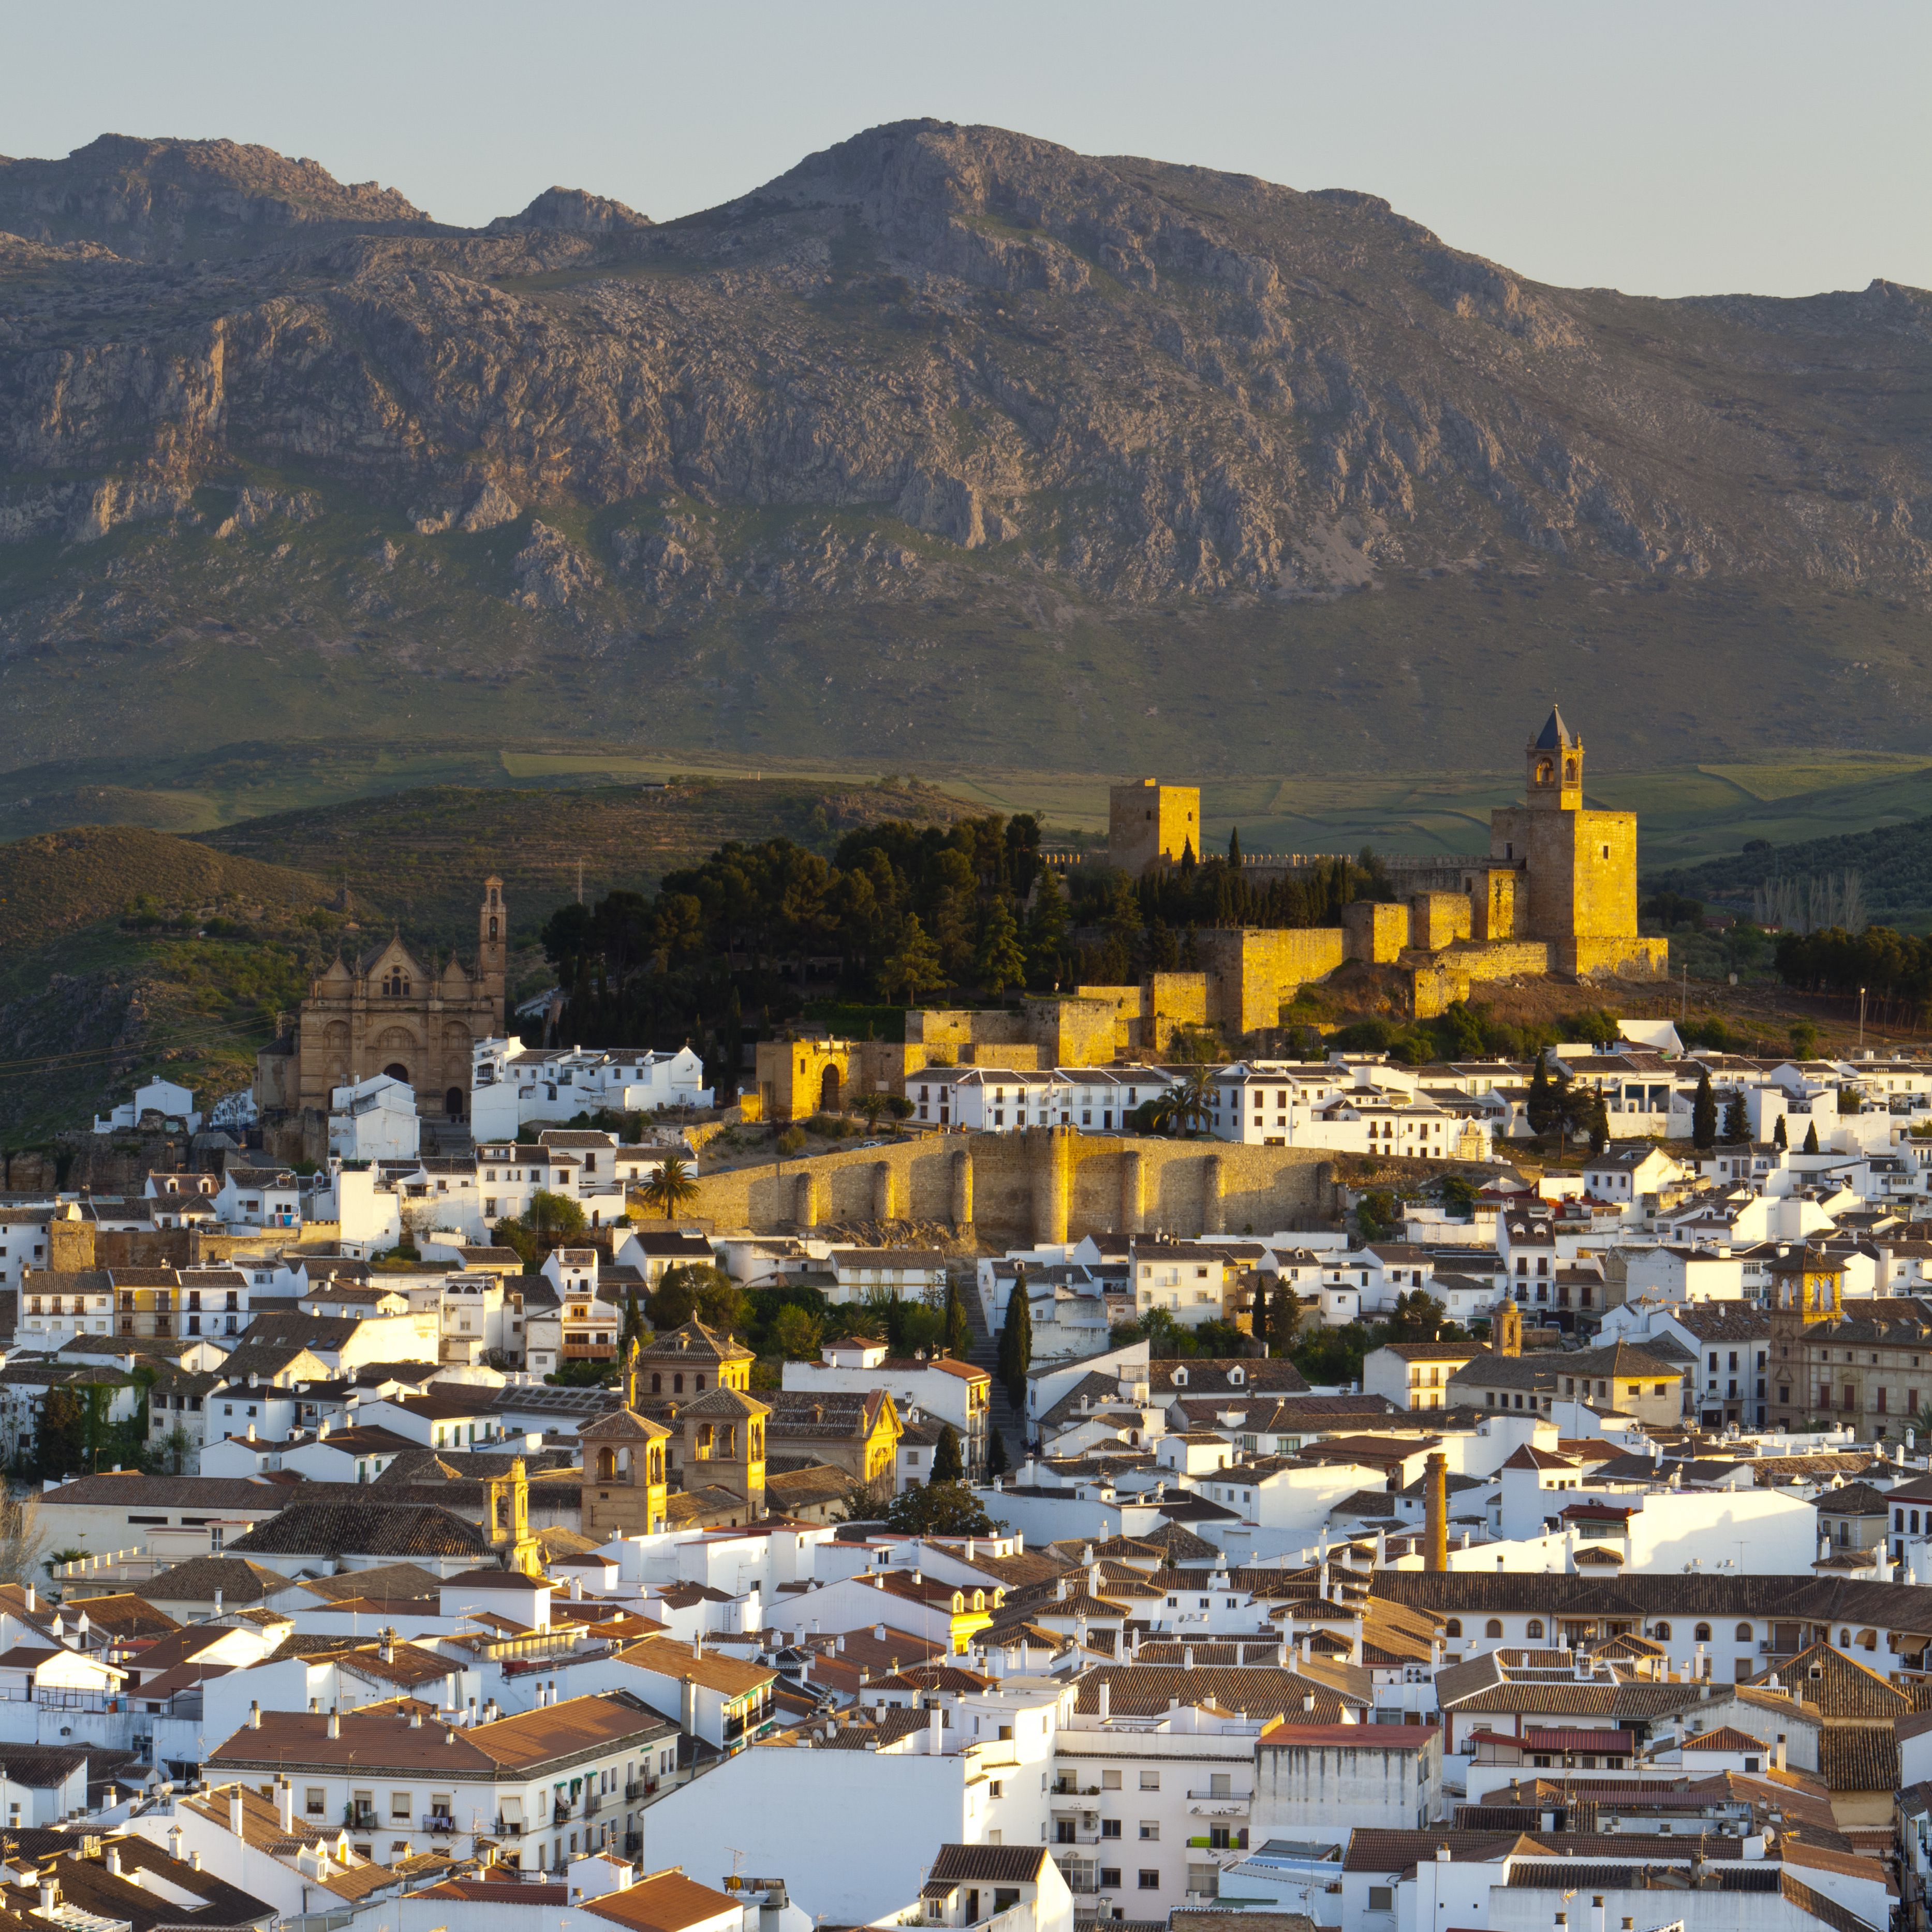 Moorish Alcazaba (castle) & city overview at sunset, Antequera, Malaga Province, Andalusia, Spain